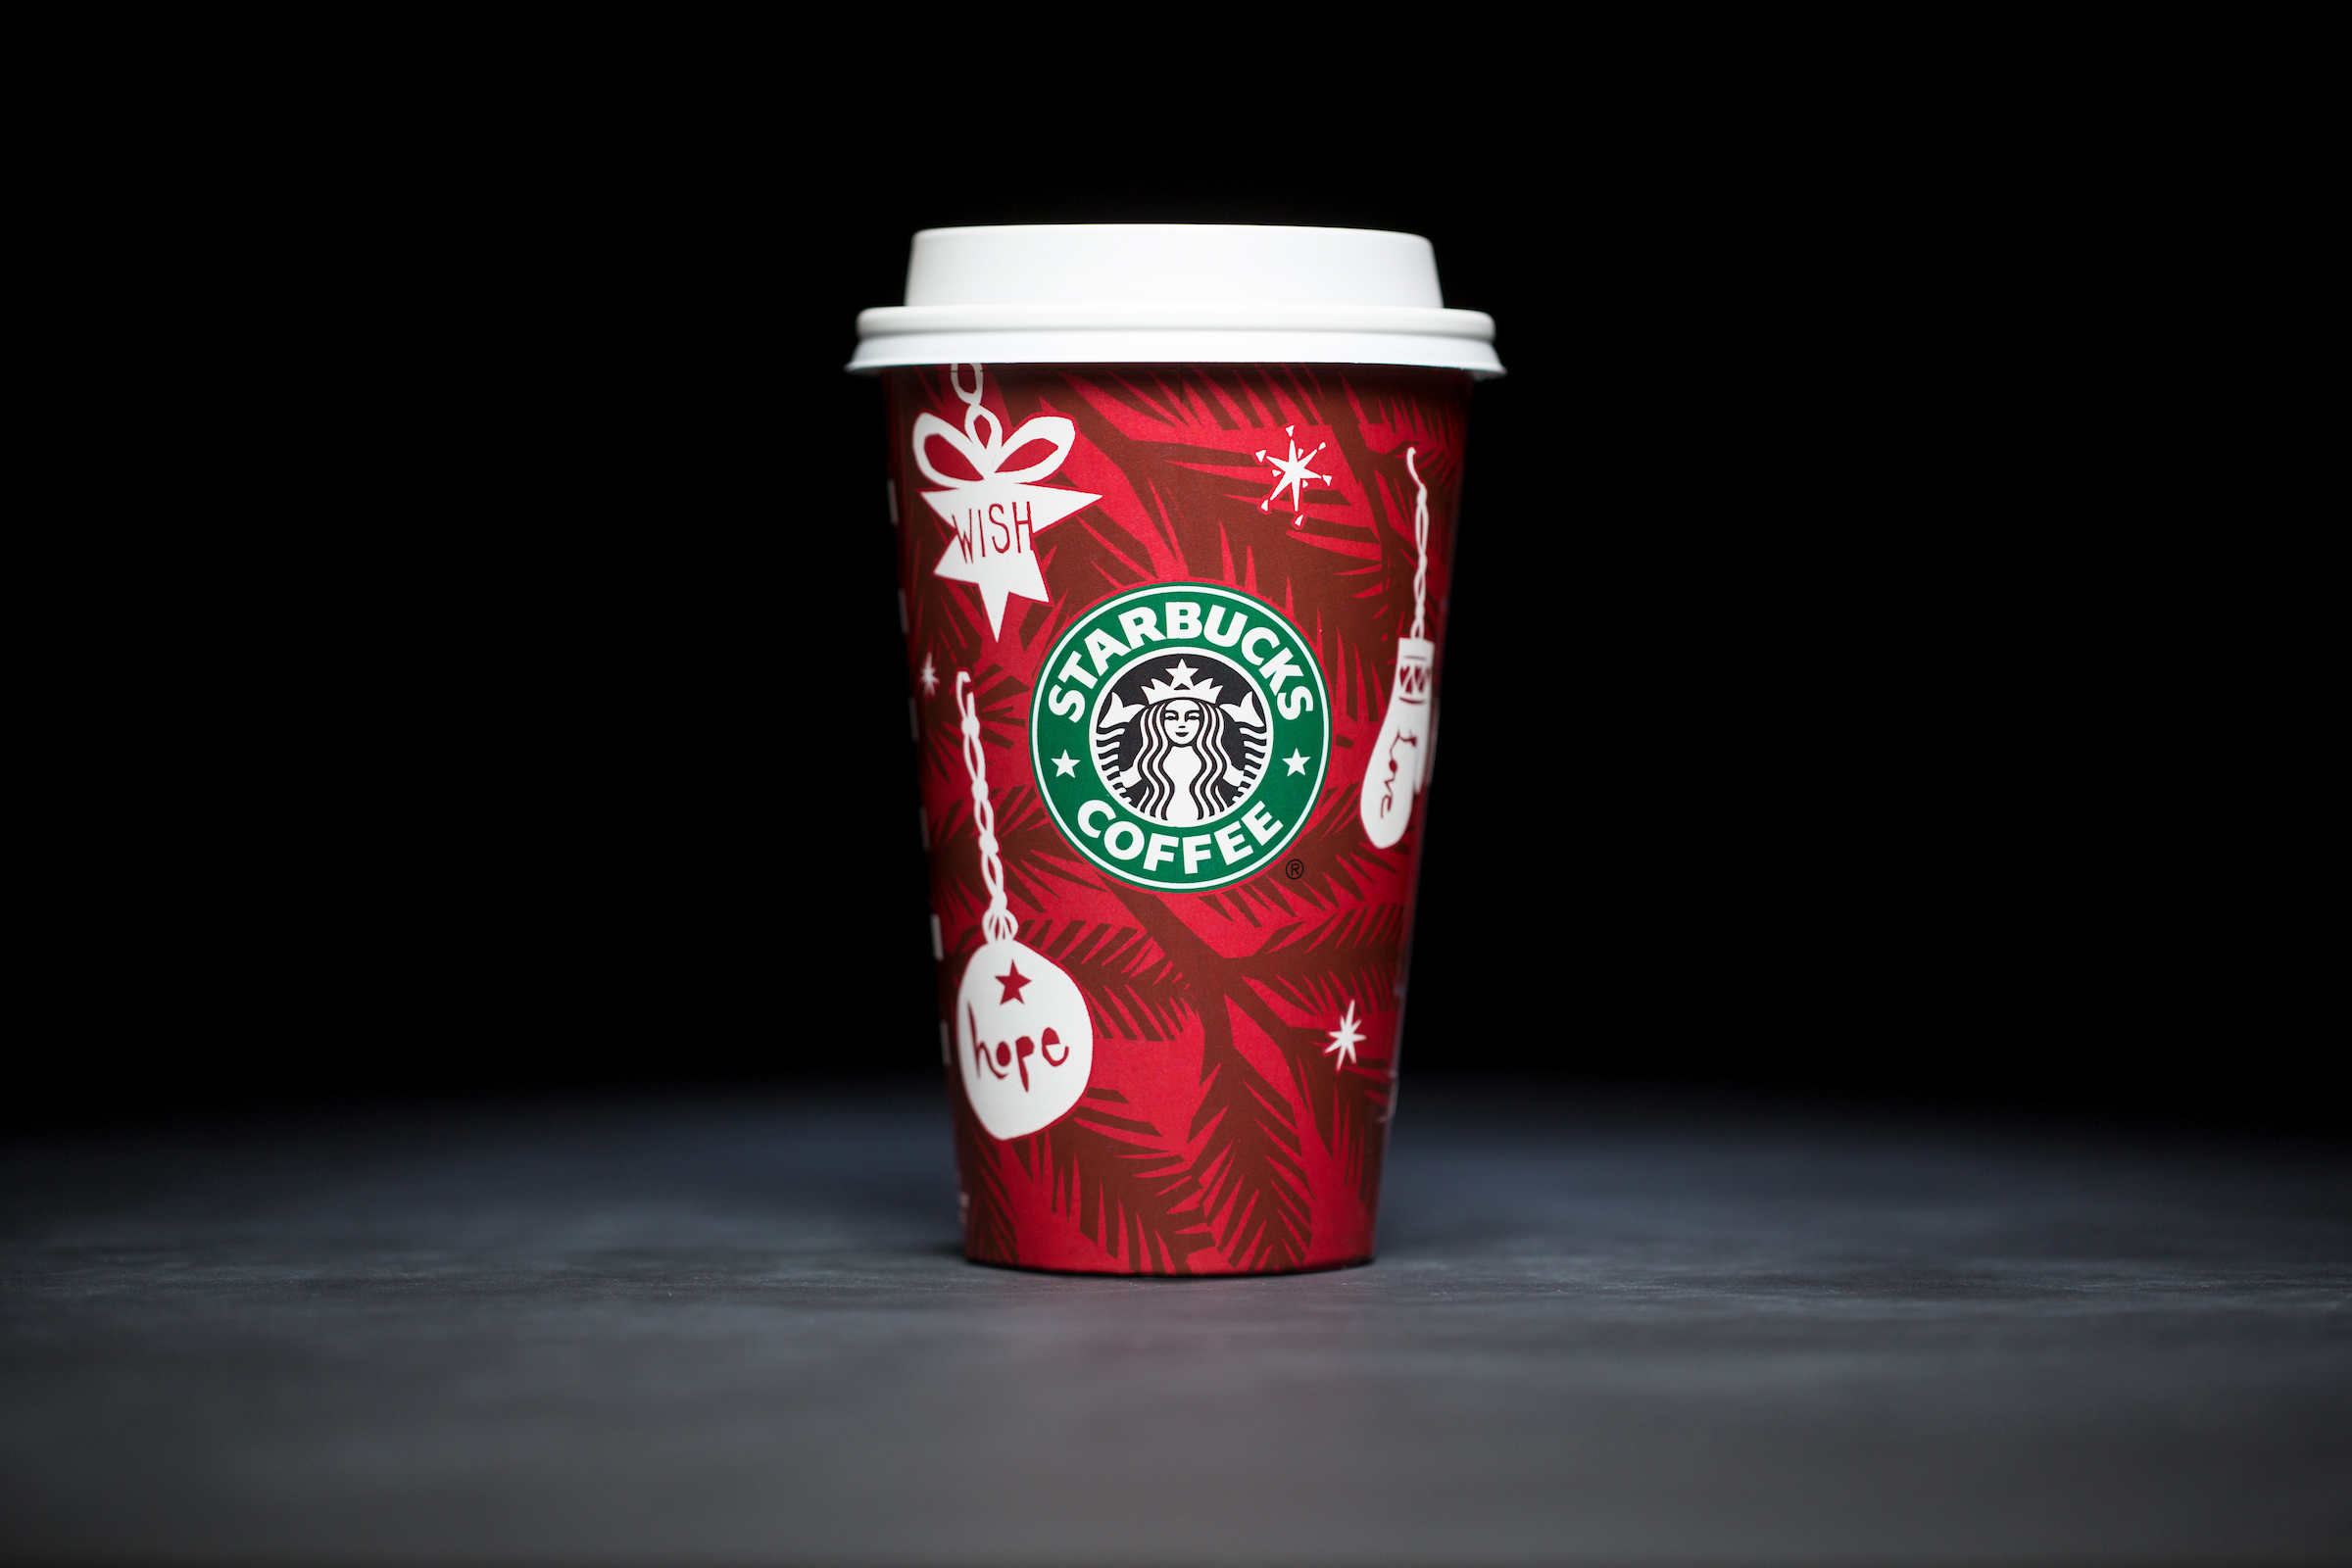 2009: For 20 years, Starbucks have released a range of holiday cup designs, most of them based around their world famous red cup. It's not easy to find the very first Starbucks holiday cups, which made their debut in stores in 1997. Few were saved, and electronic design files were lost in an earthquake in 2001. Even an Internet search is unyielding, with the cups having made their arrival long before the first selfie. But, we have them here! Click on for a photos of all 20 holidays cup designs. (Image: Joshua Trujillo/Cover Images)